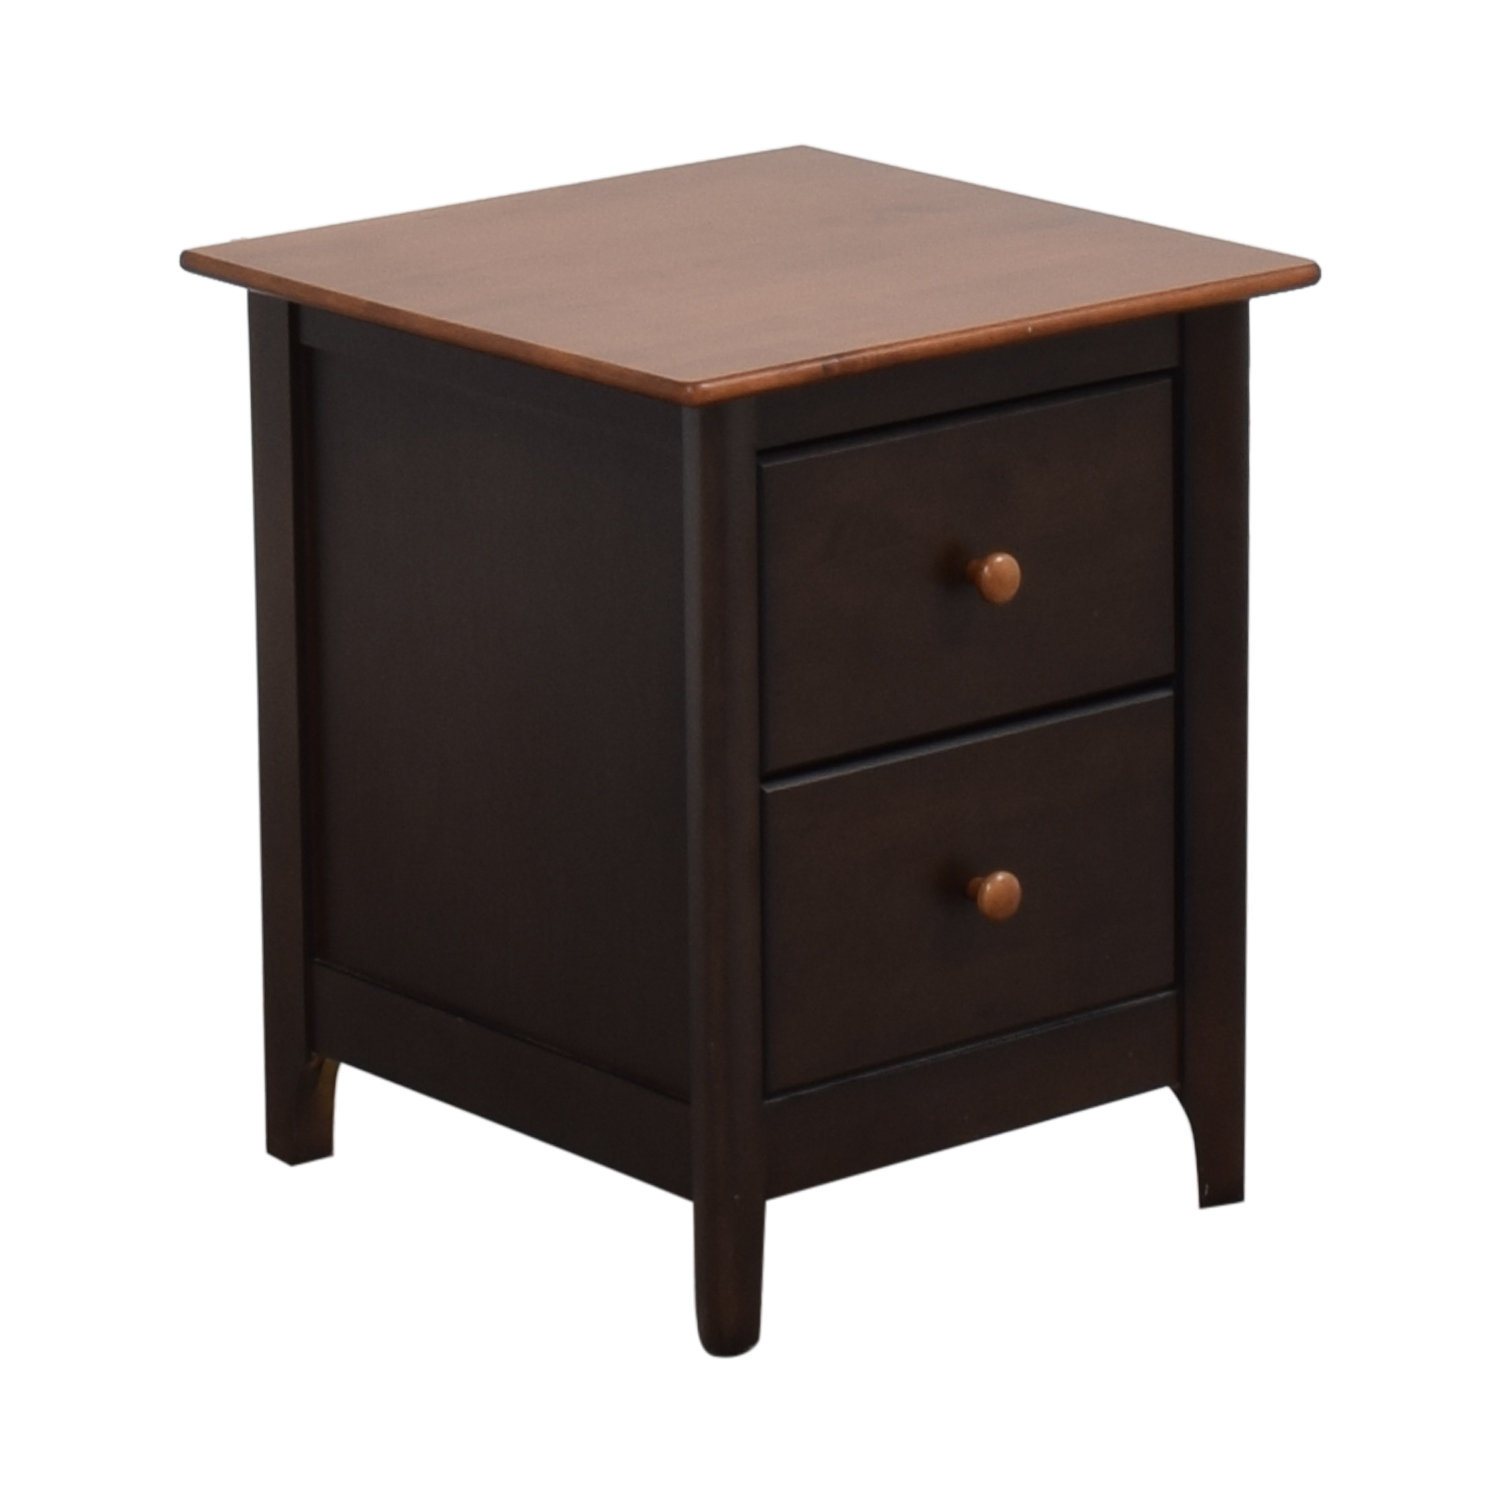 Nadeau Nadeau Two Tone End Table second hand